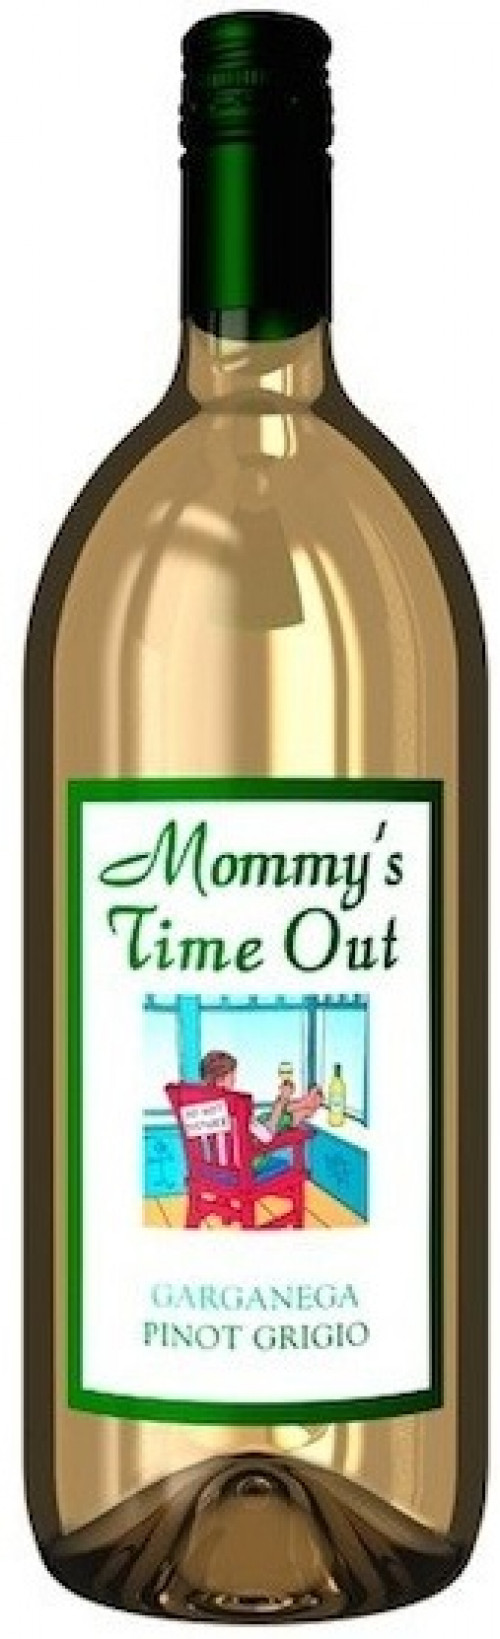 Mommy's Time Out White 1.5L NV